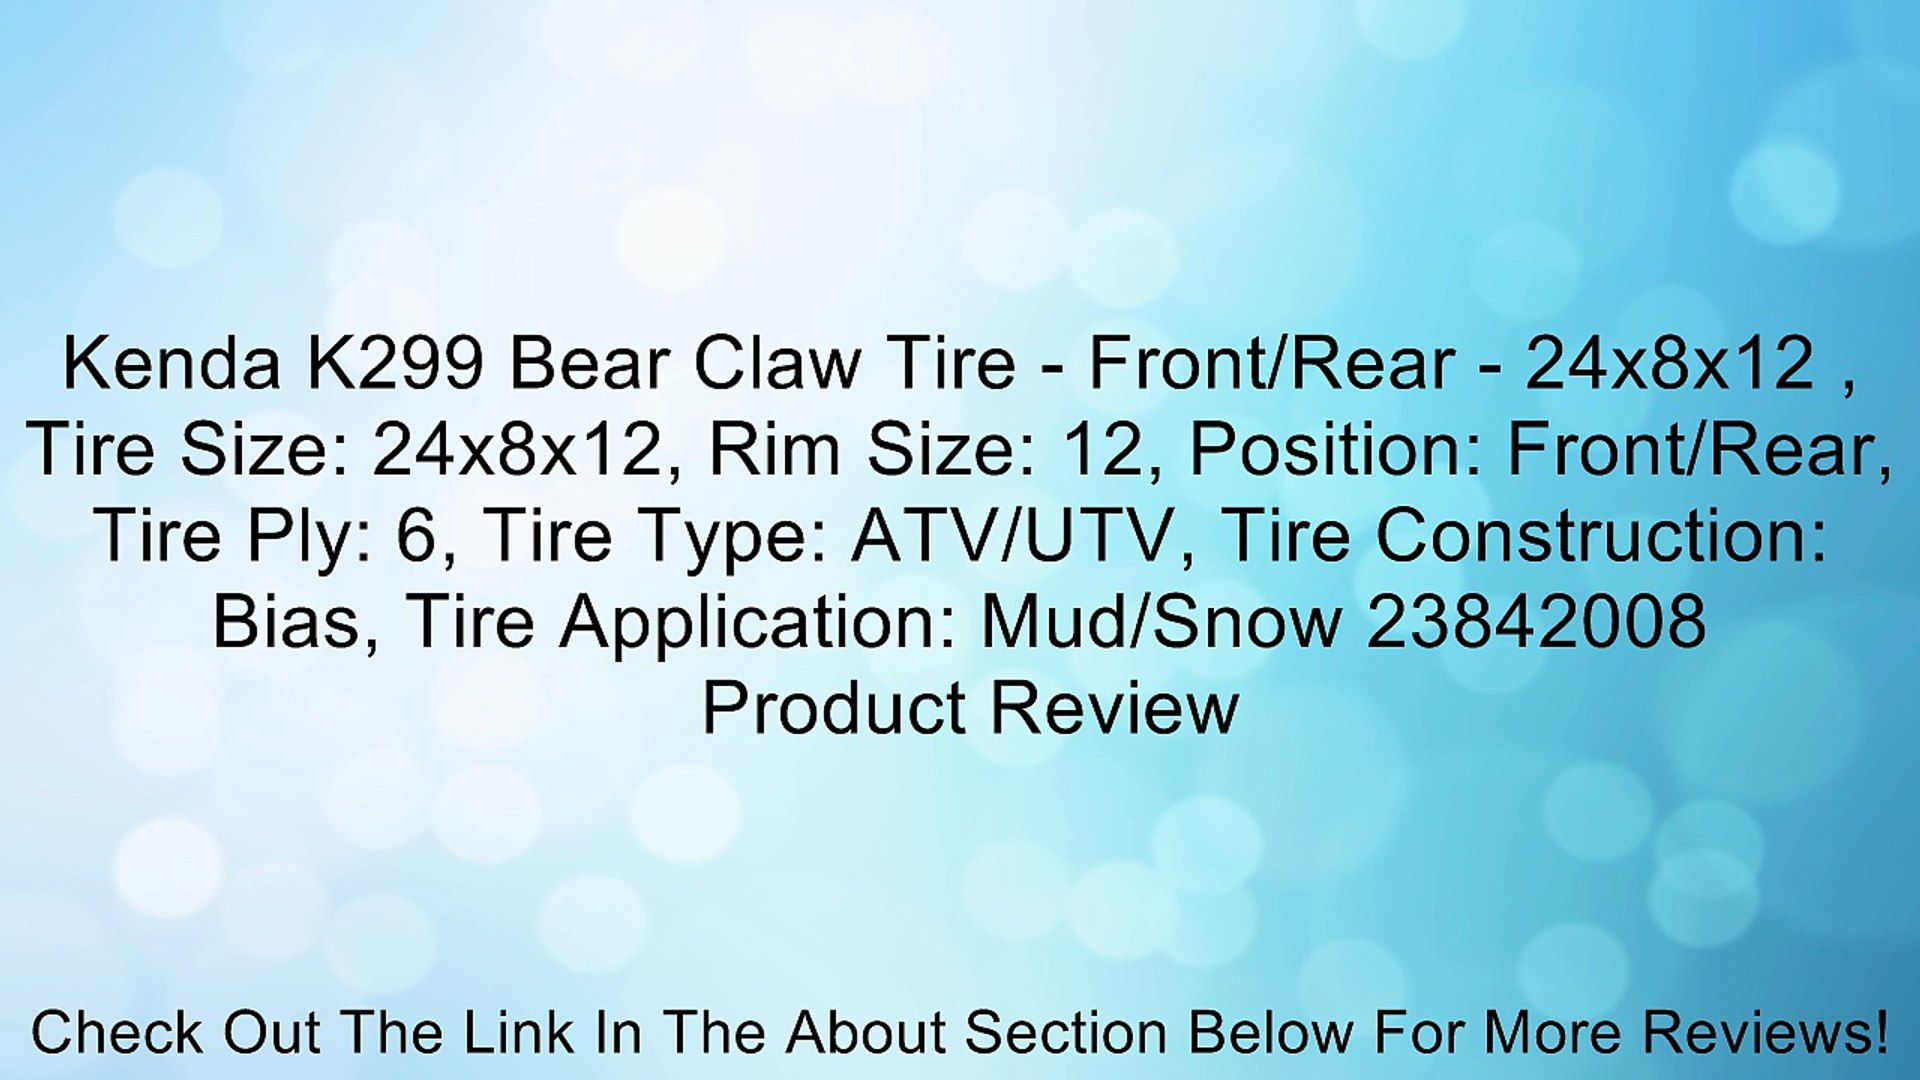 Kenda K299 Bear Claw Tire - Front/Rear - 24x8x12 , Tire Size: 24x8x12, Rim Size: 12, Position: Front